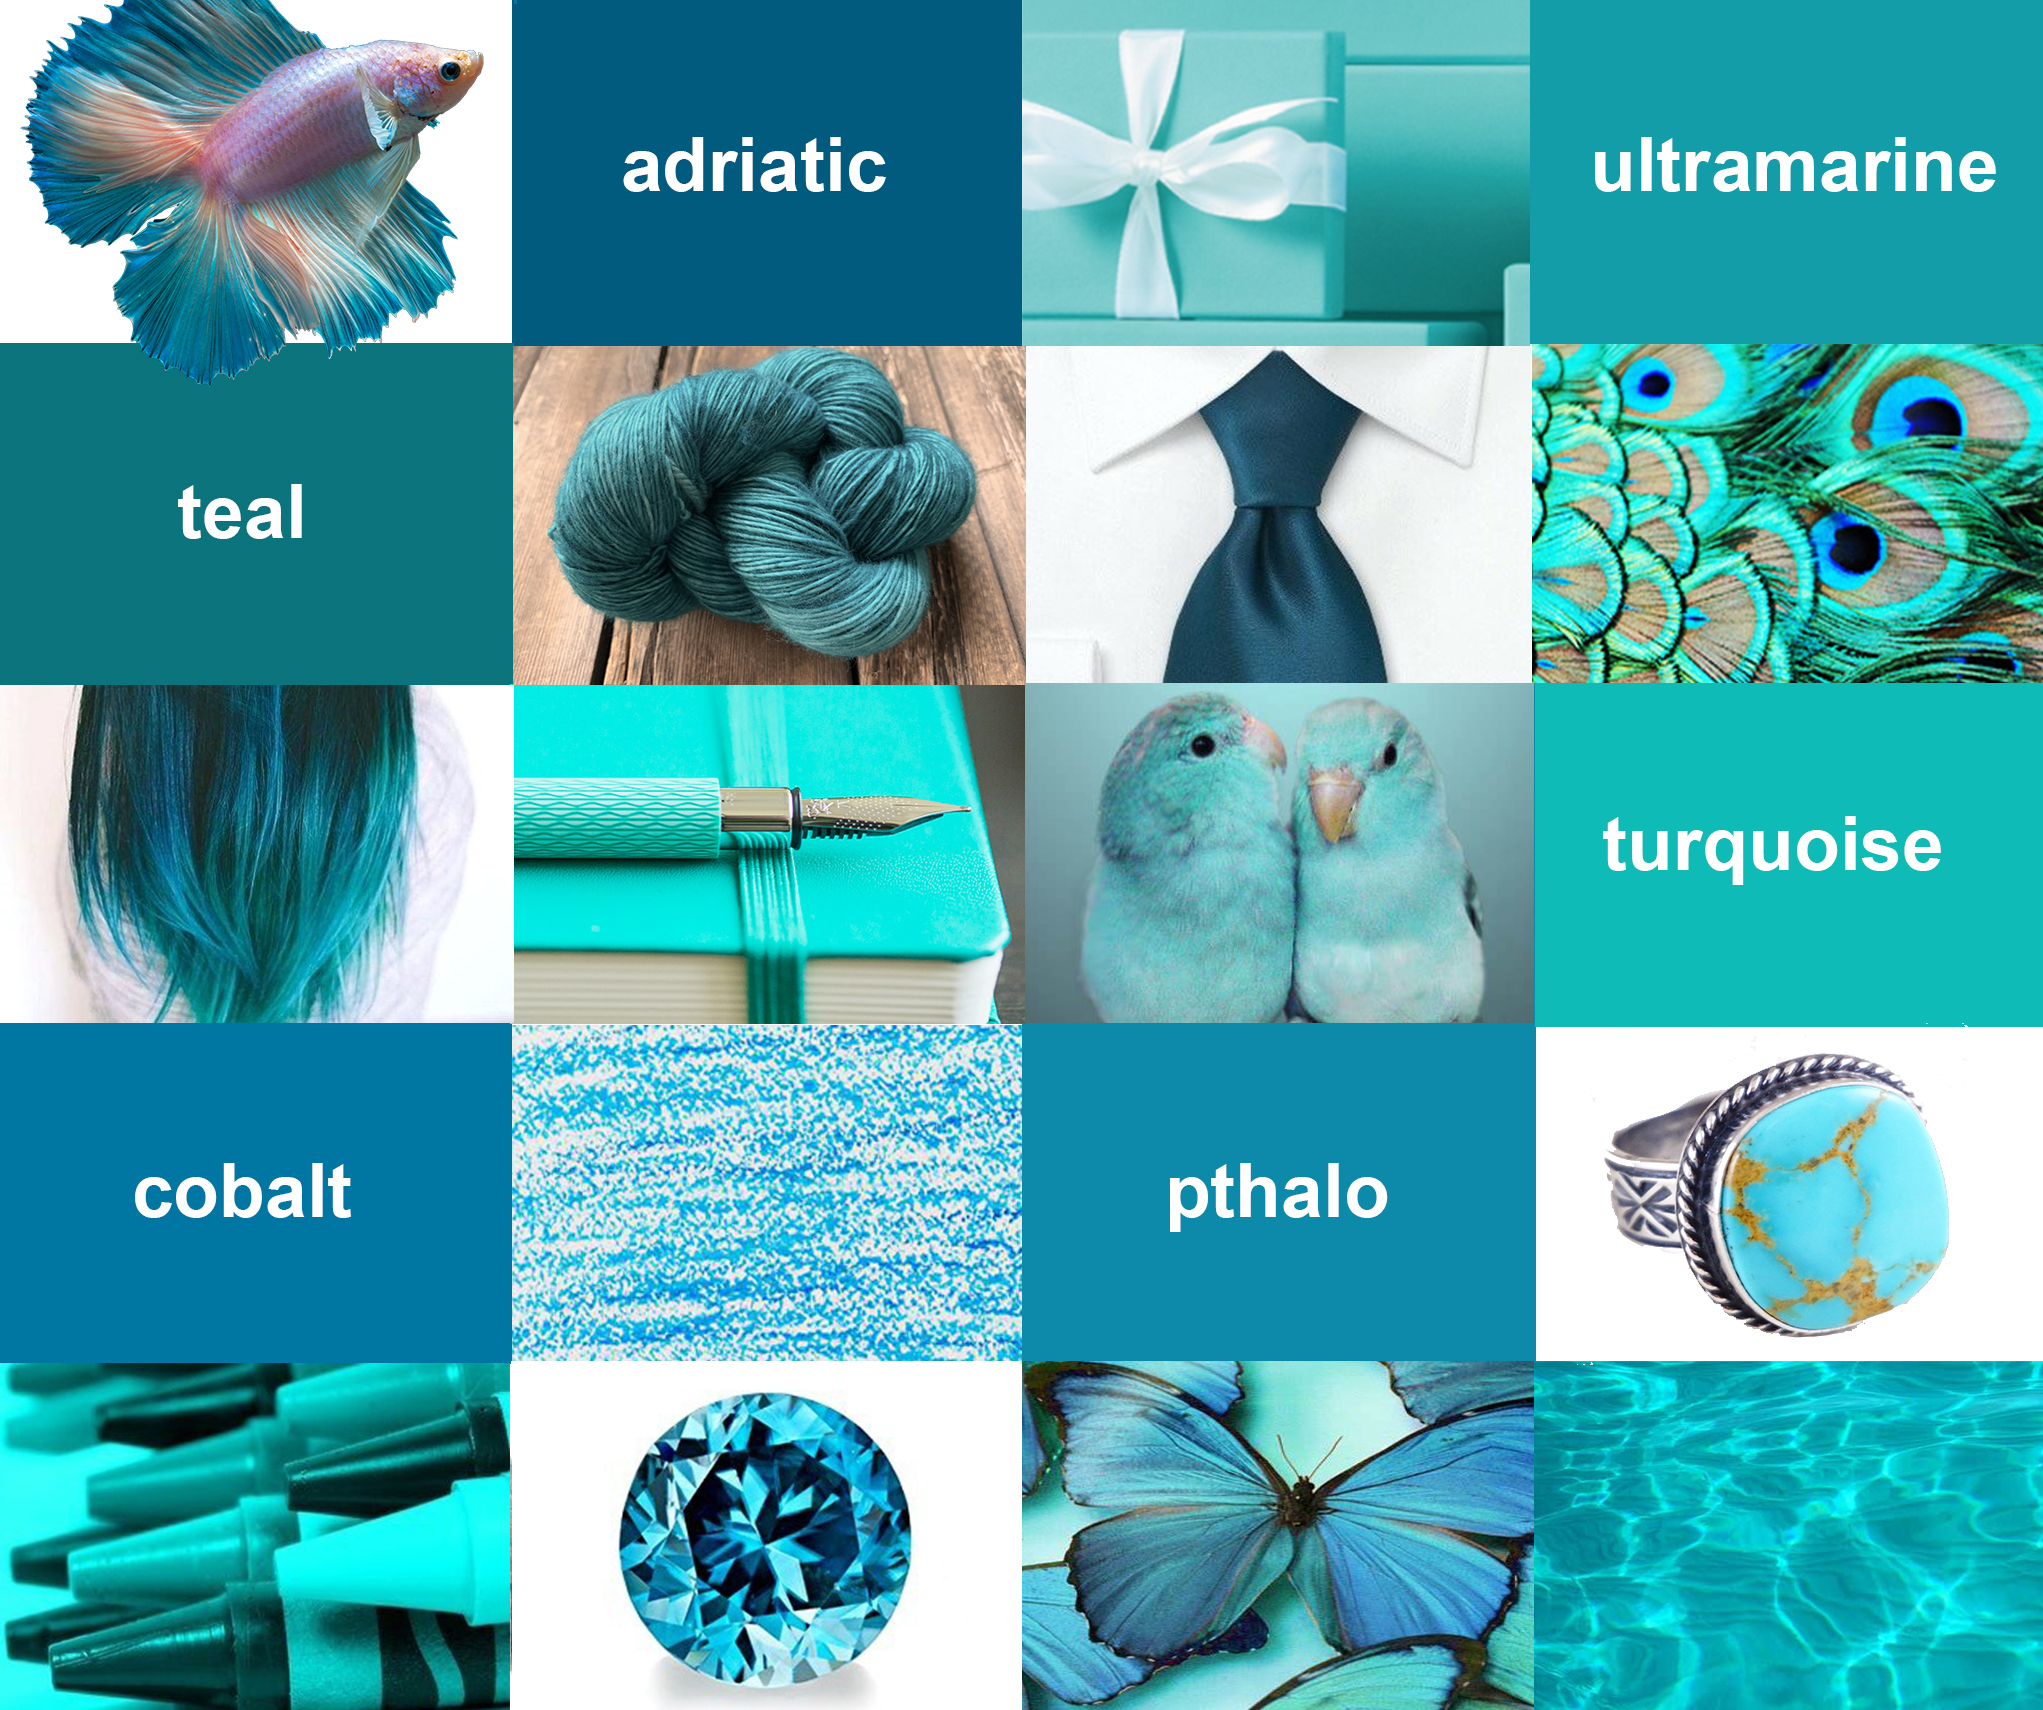 Exploring Turquoise Teal University Art